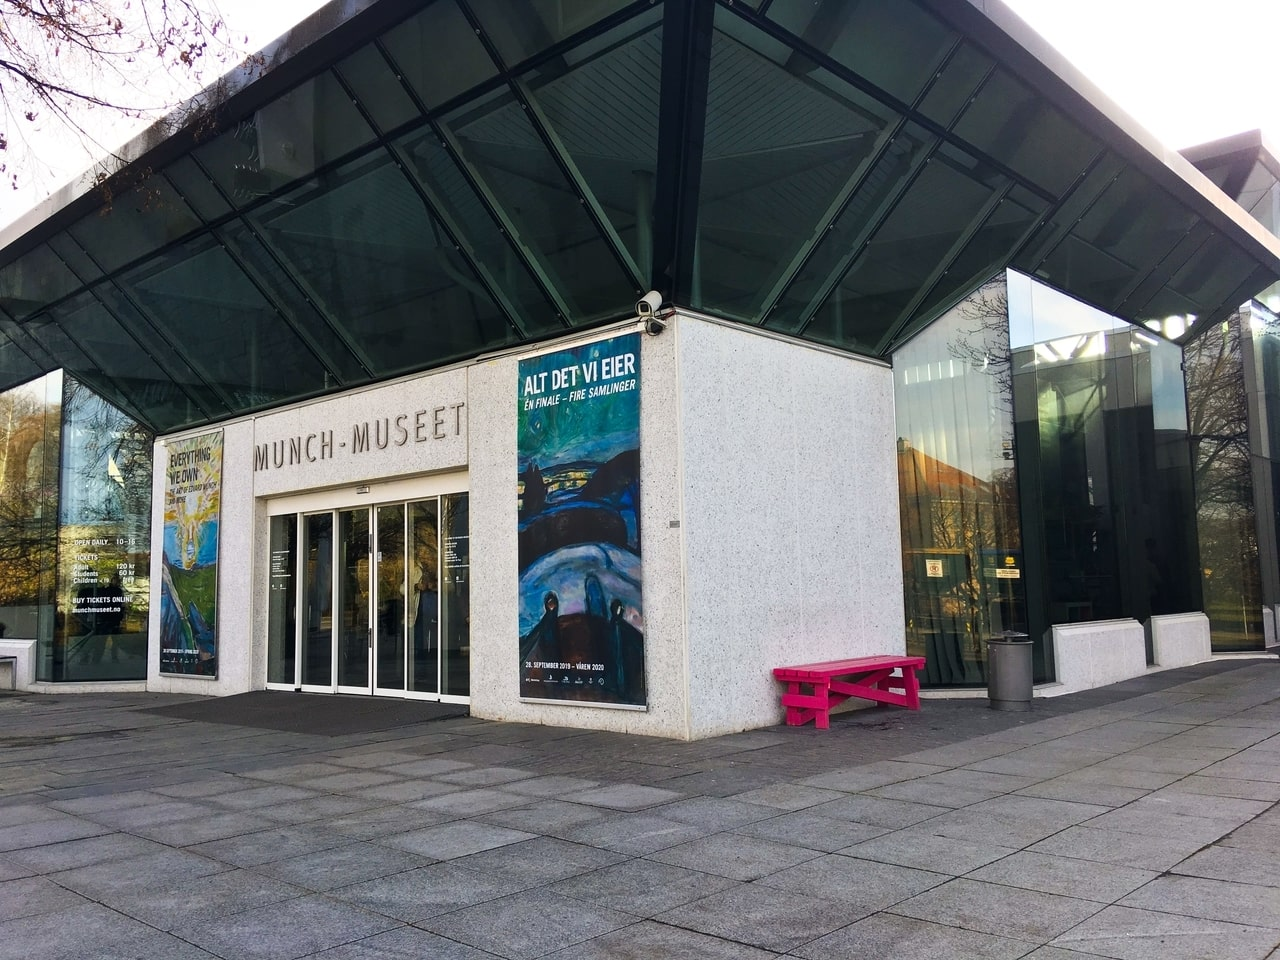 The exterior of the Munch Museum in Oslo, Norway.